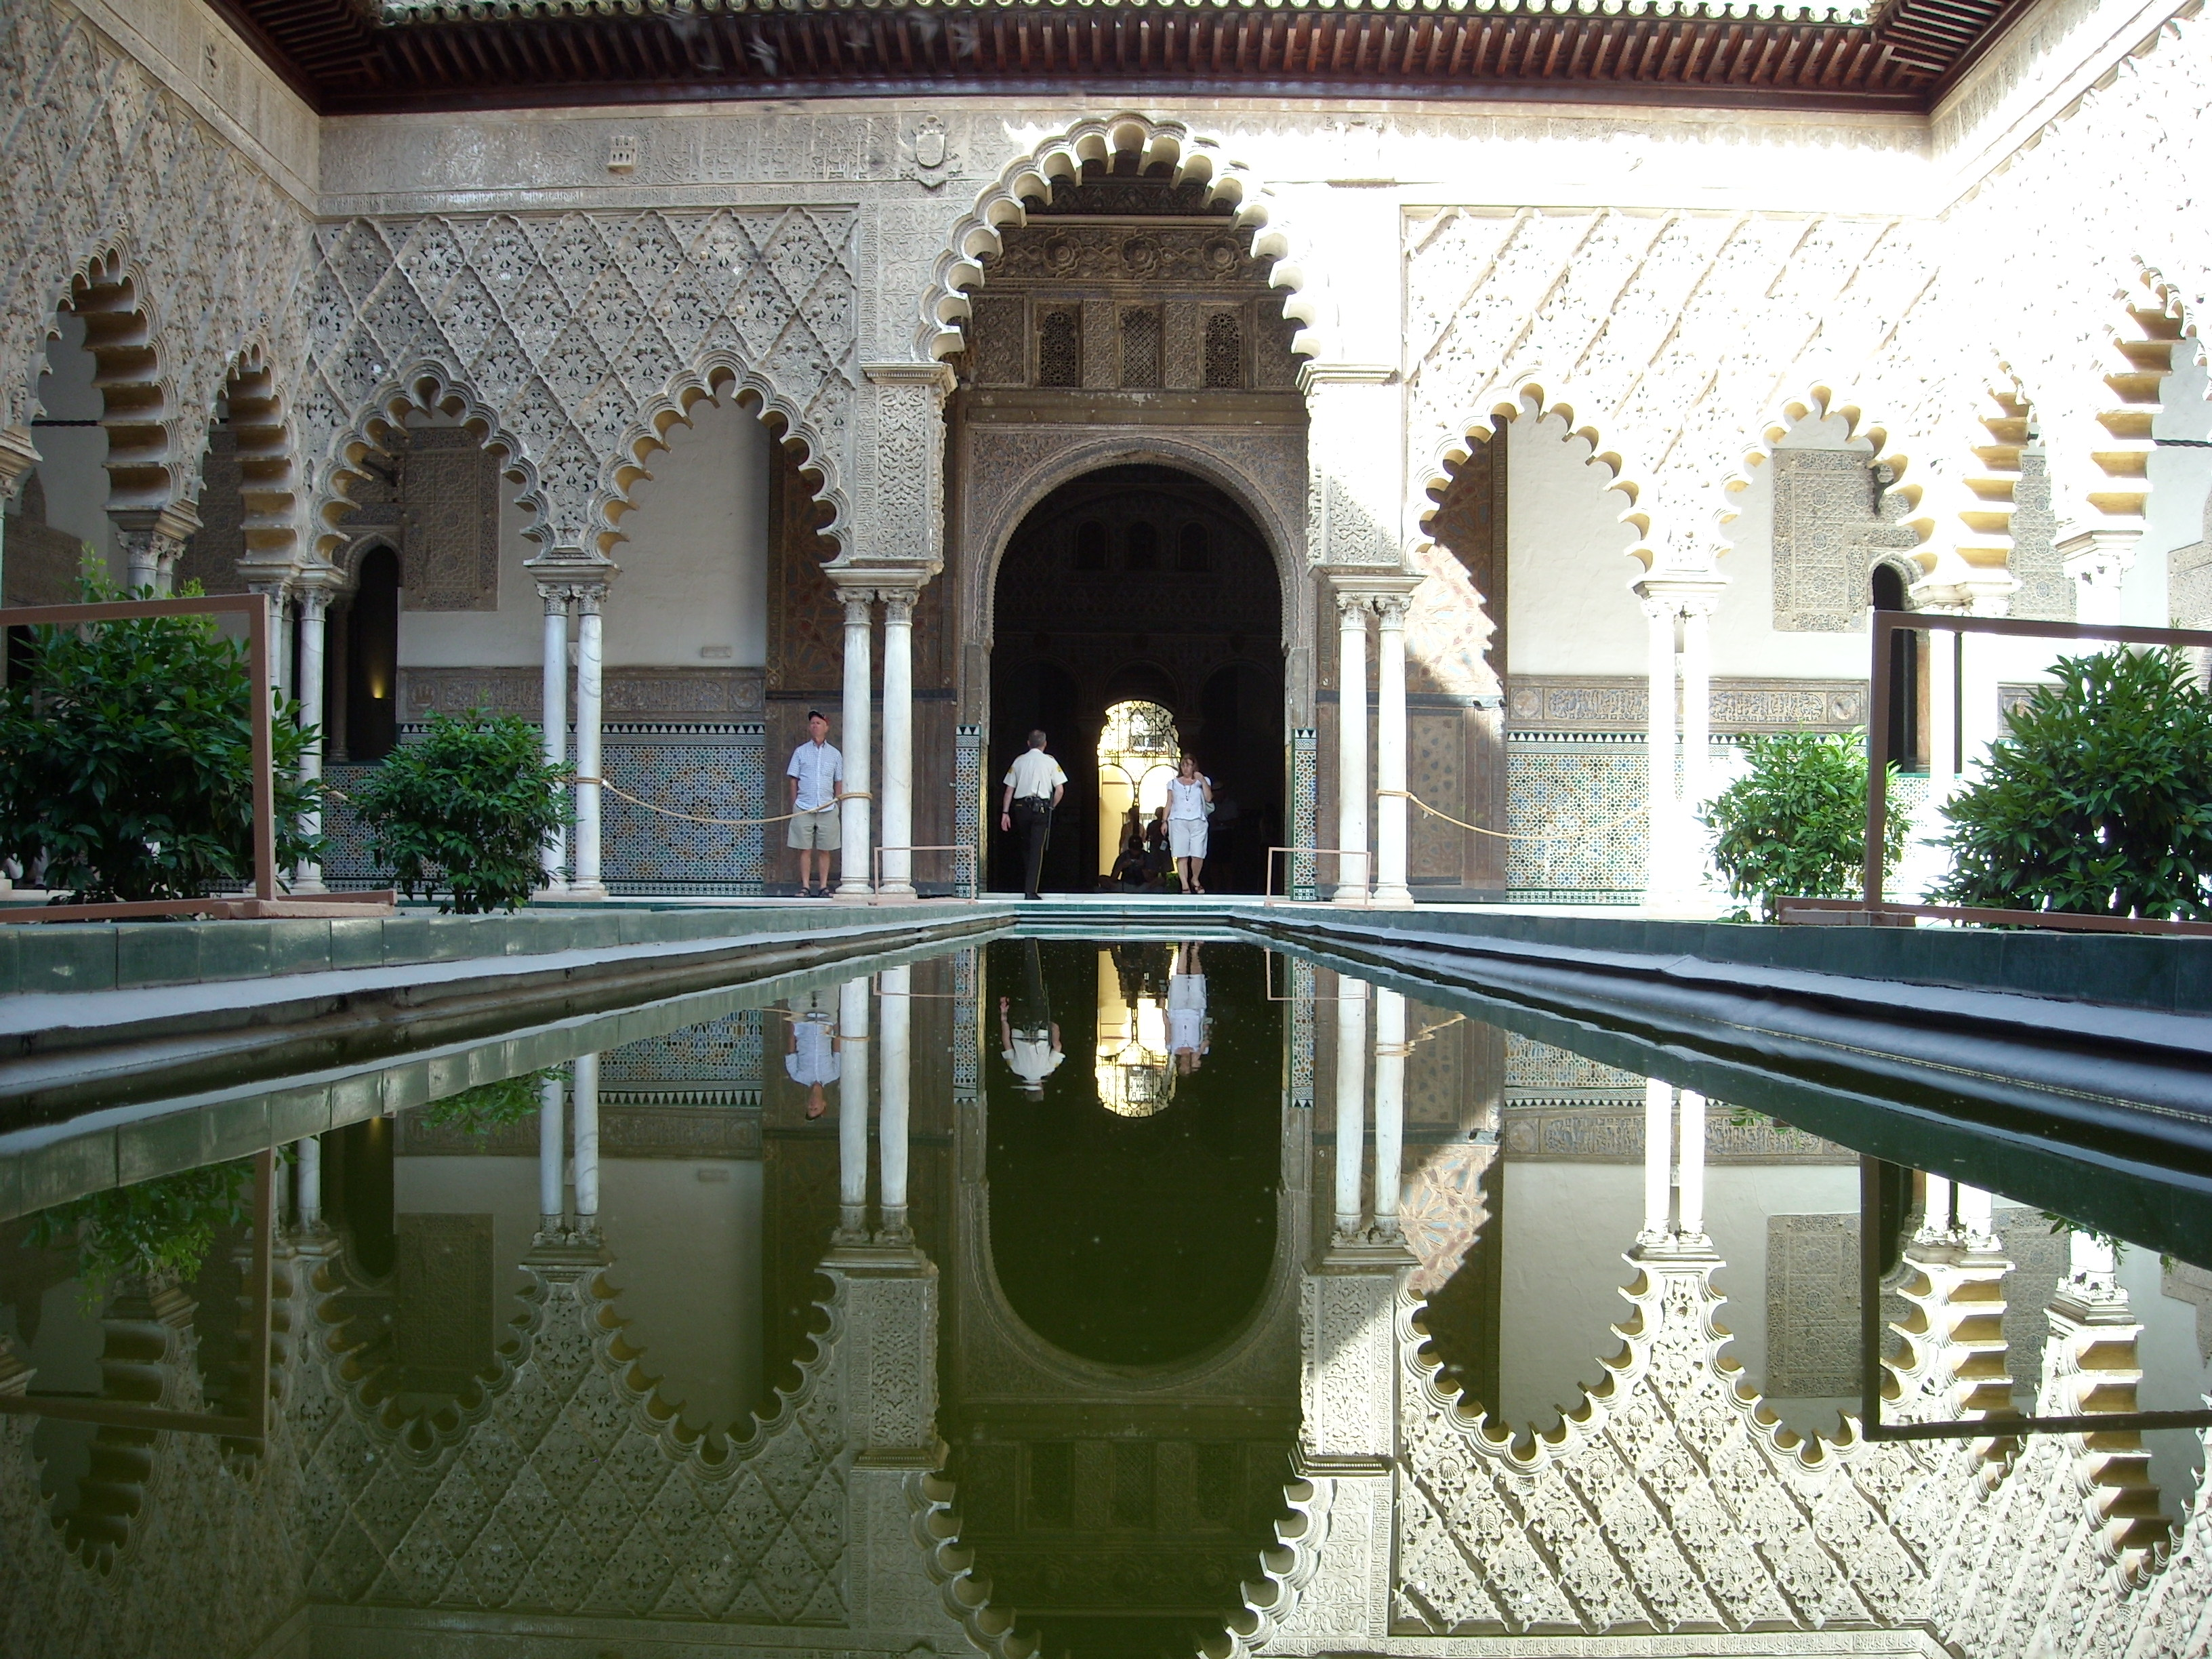 File:Real Alcazar Siviglia.JPG - Wikimedia Commons